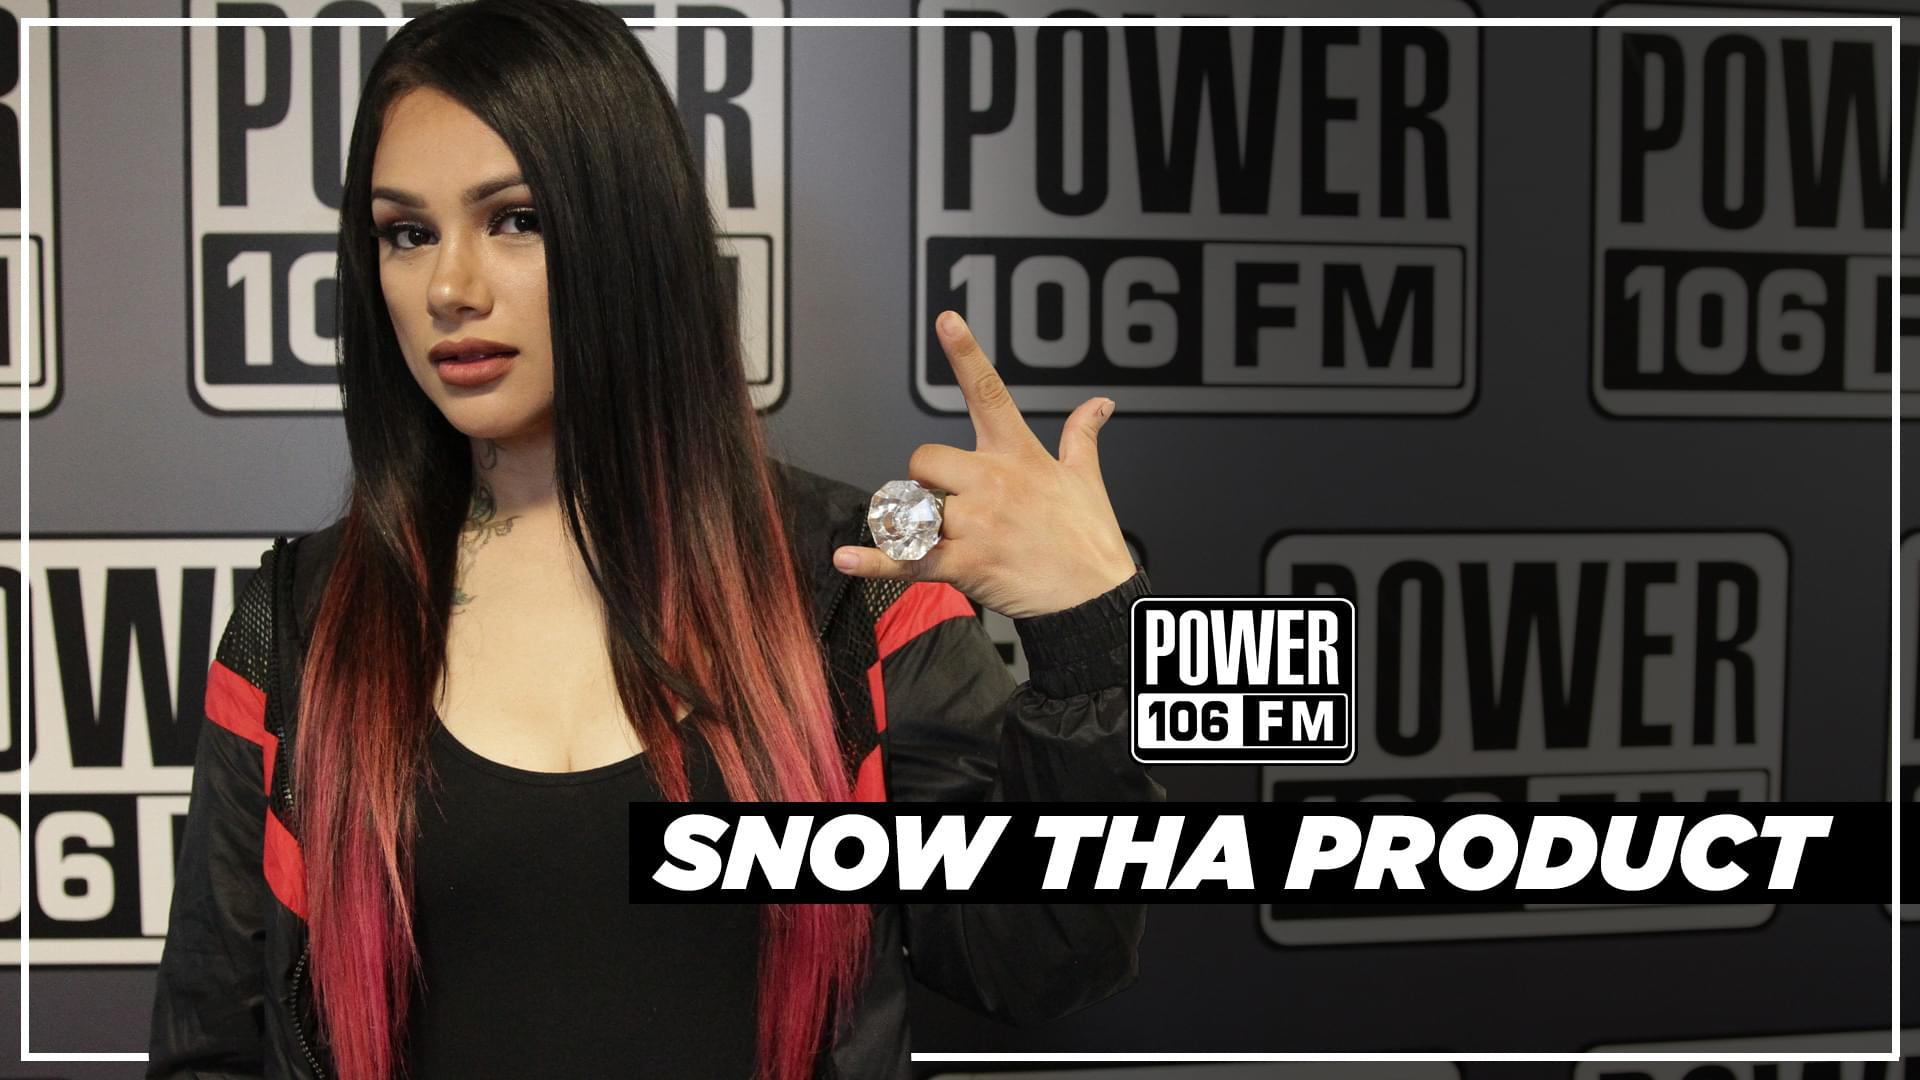 Snow Tha Product On Raising An 8-Year-Old & Representing The Mexican Community [WATCH]